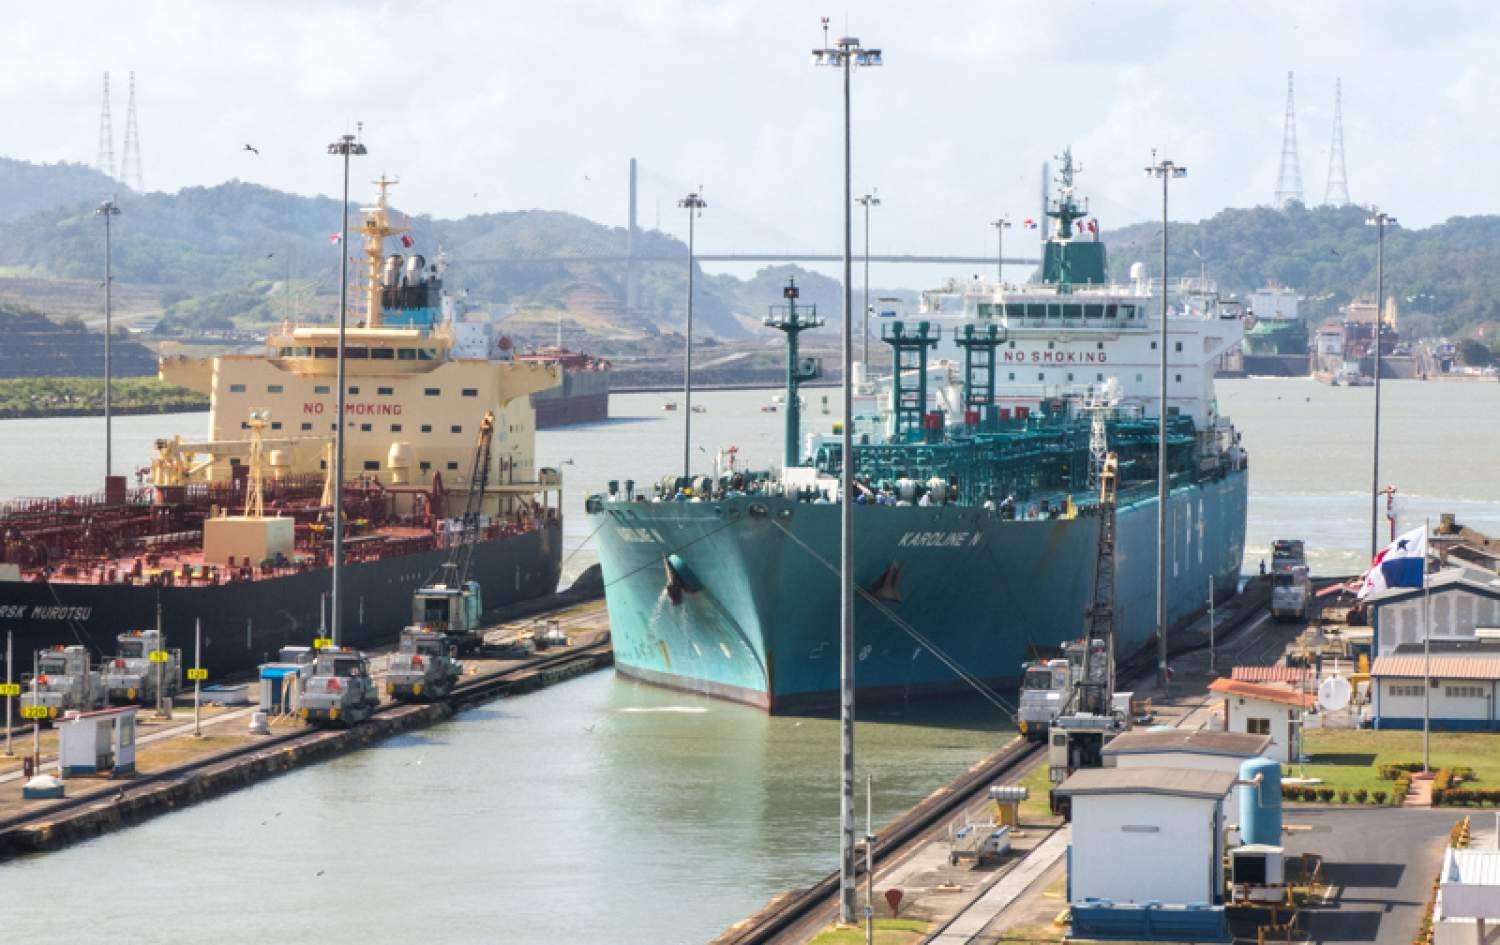 Cargo ships at the Panama Canal